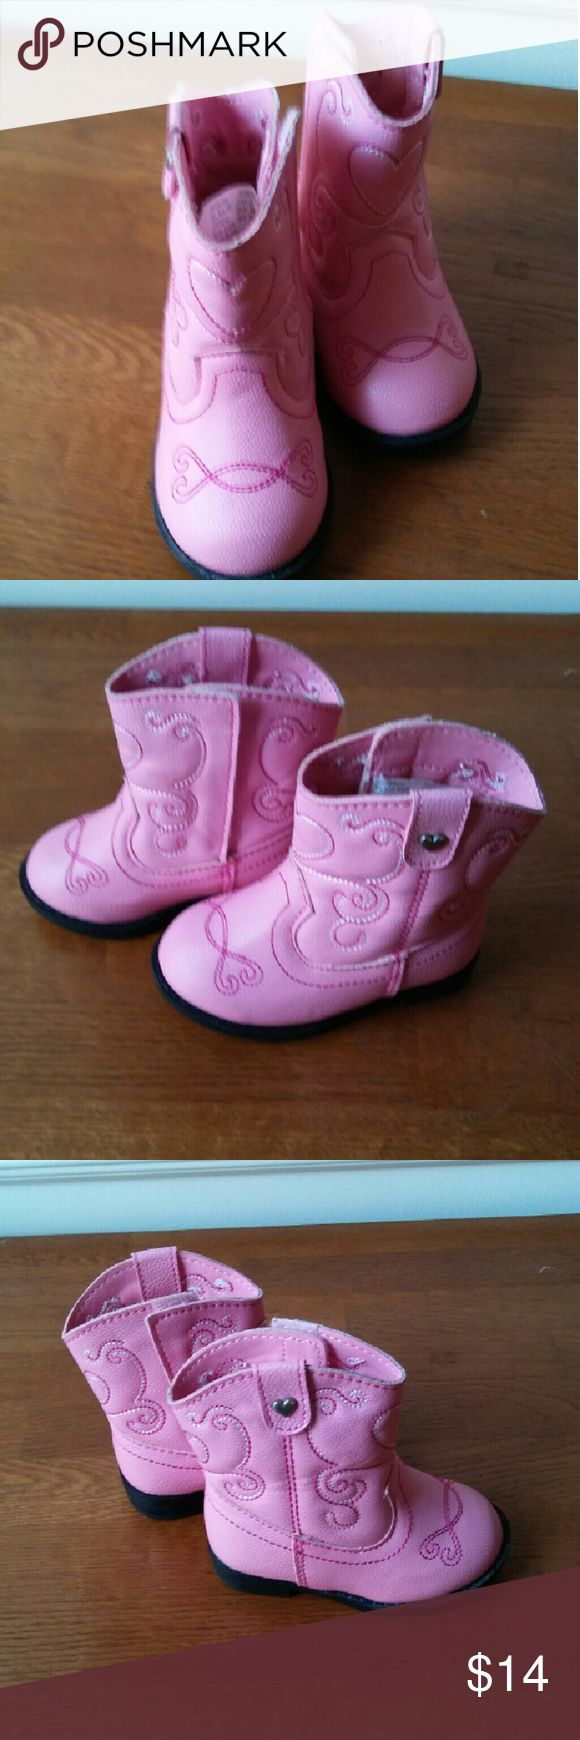 Infant cowboy boots size 3 Brand new Shoes Boots